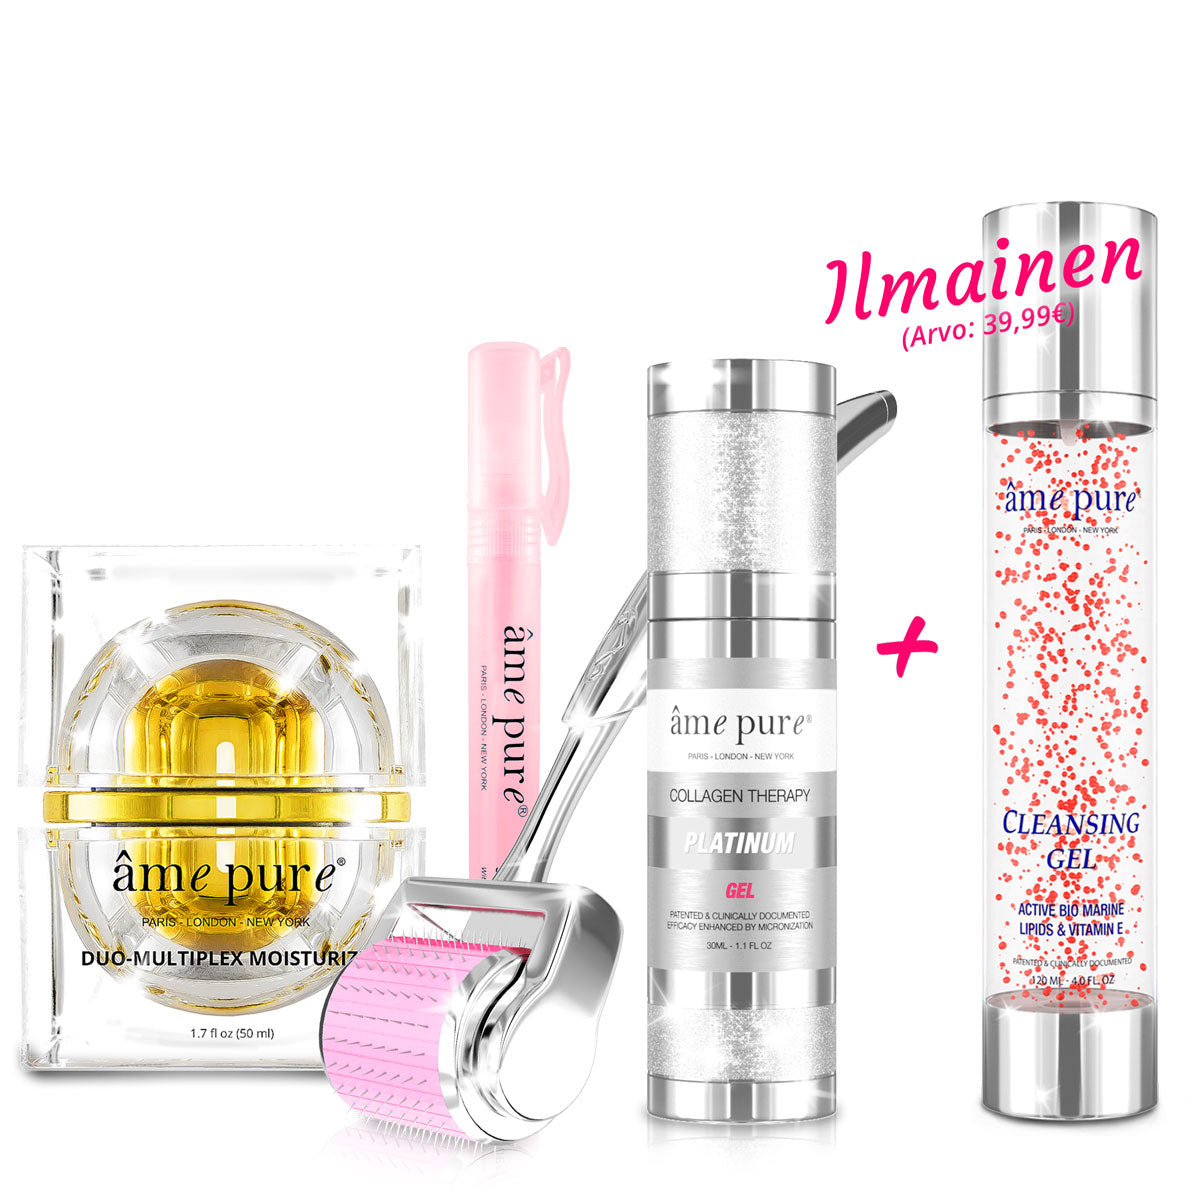 CIT Face Roller PLATINUM + Duo Multiplex + ILMAINEN Cleansing Gel